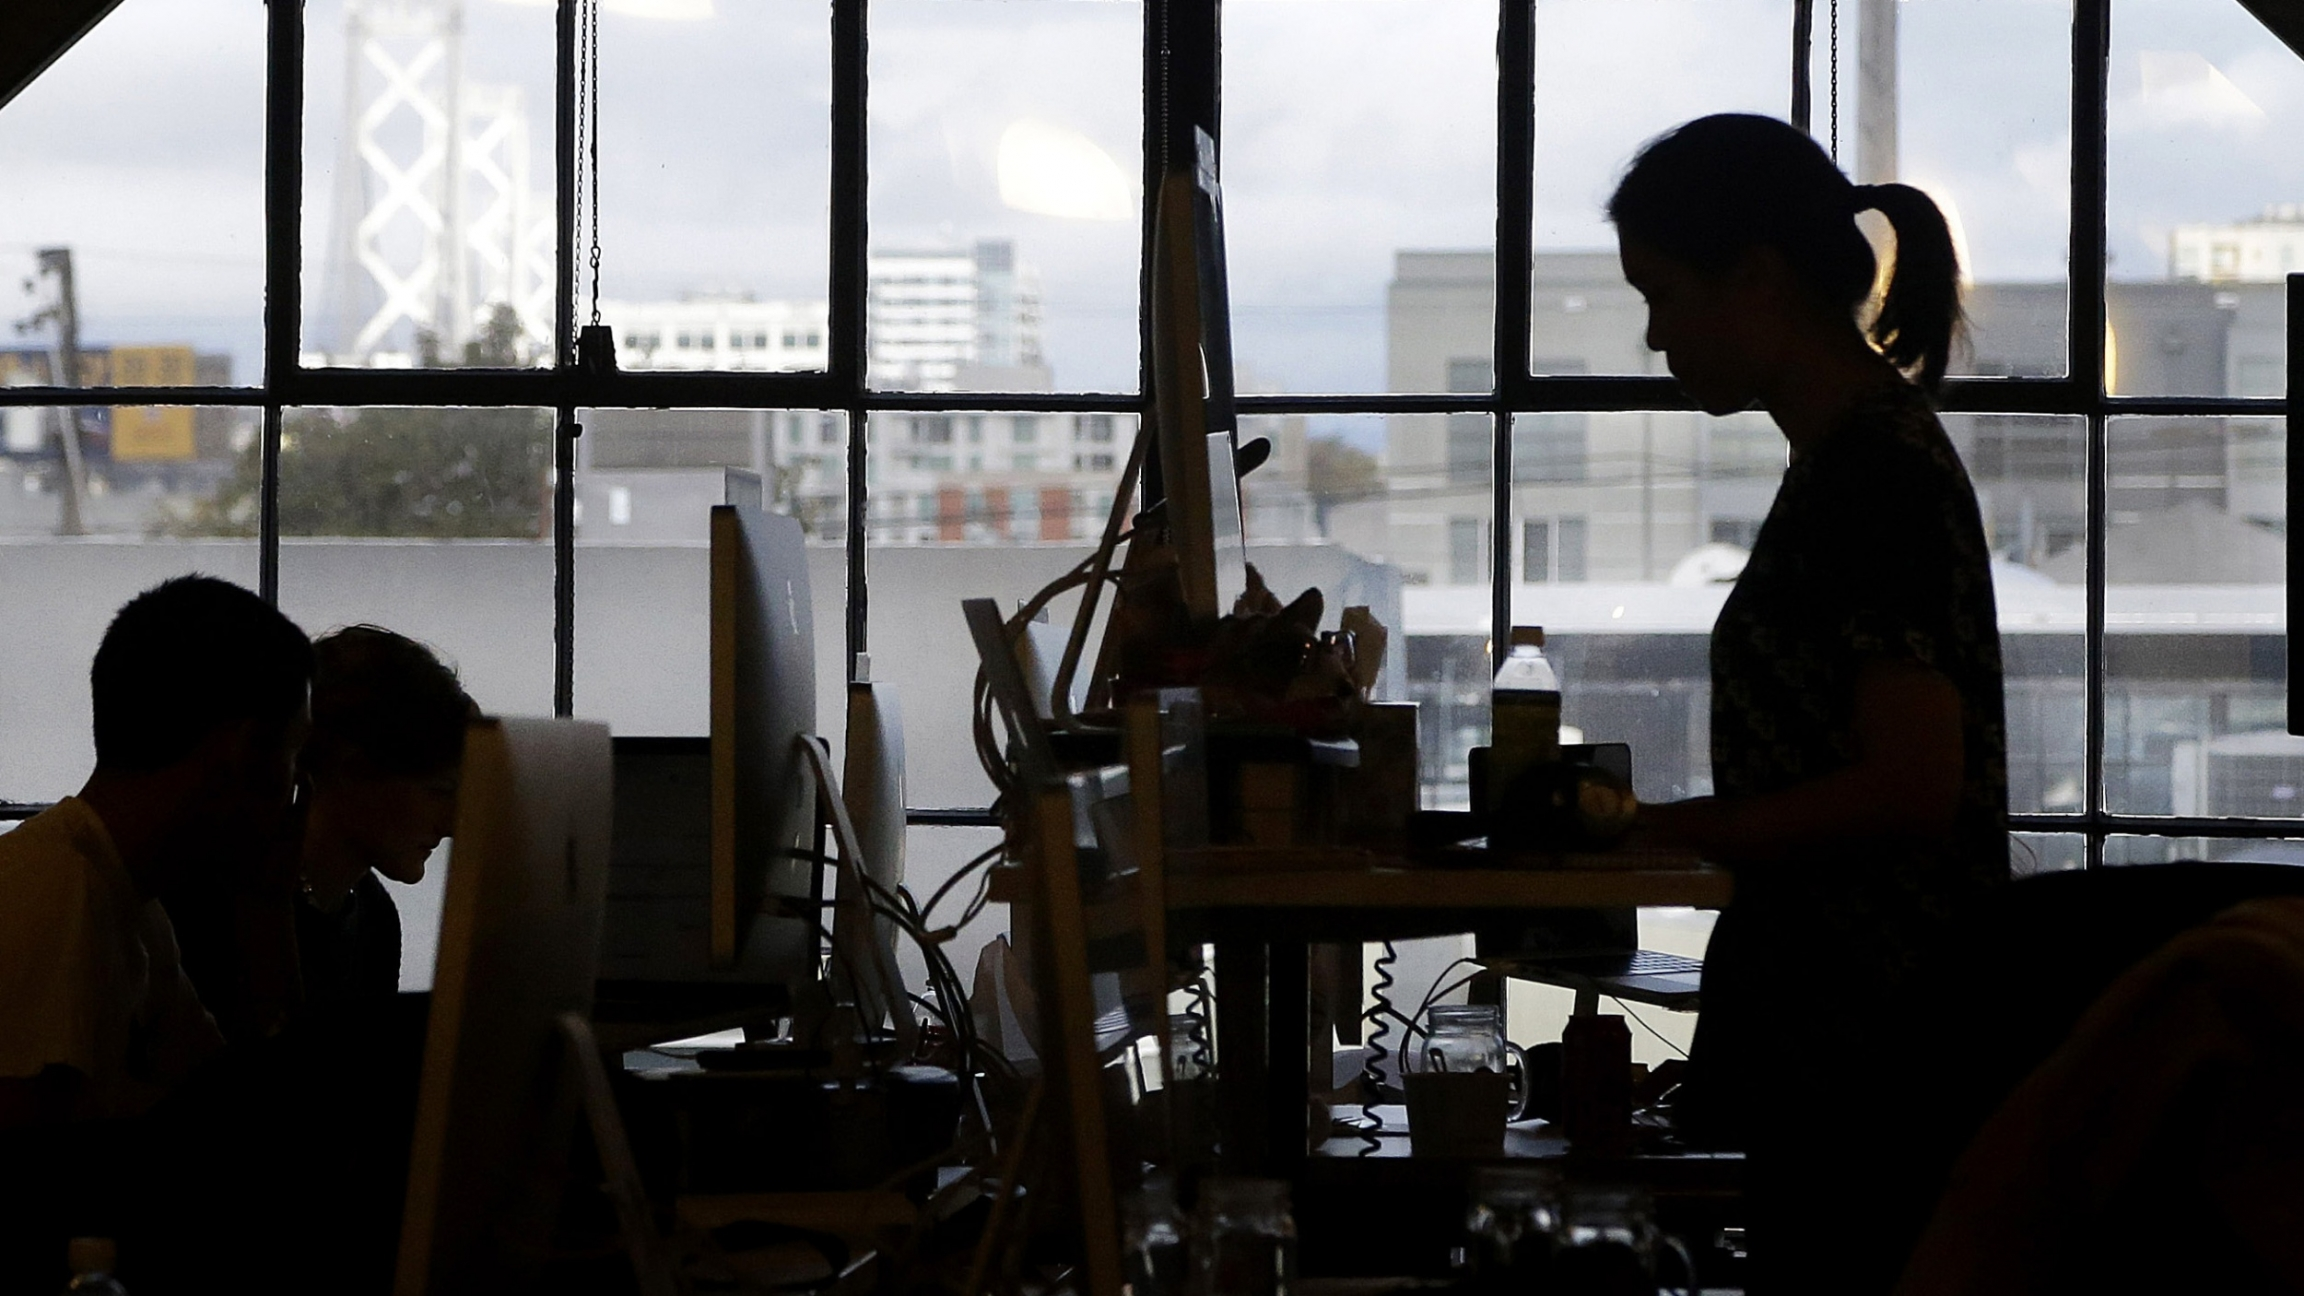 Office worker silhouetted in front of a window